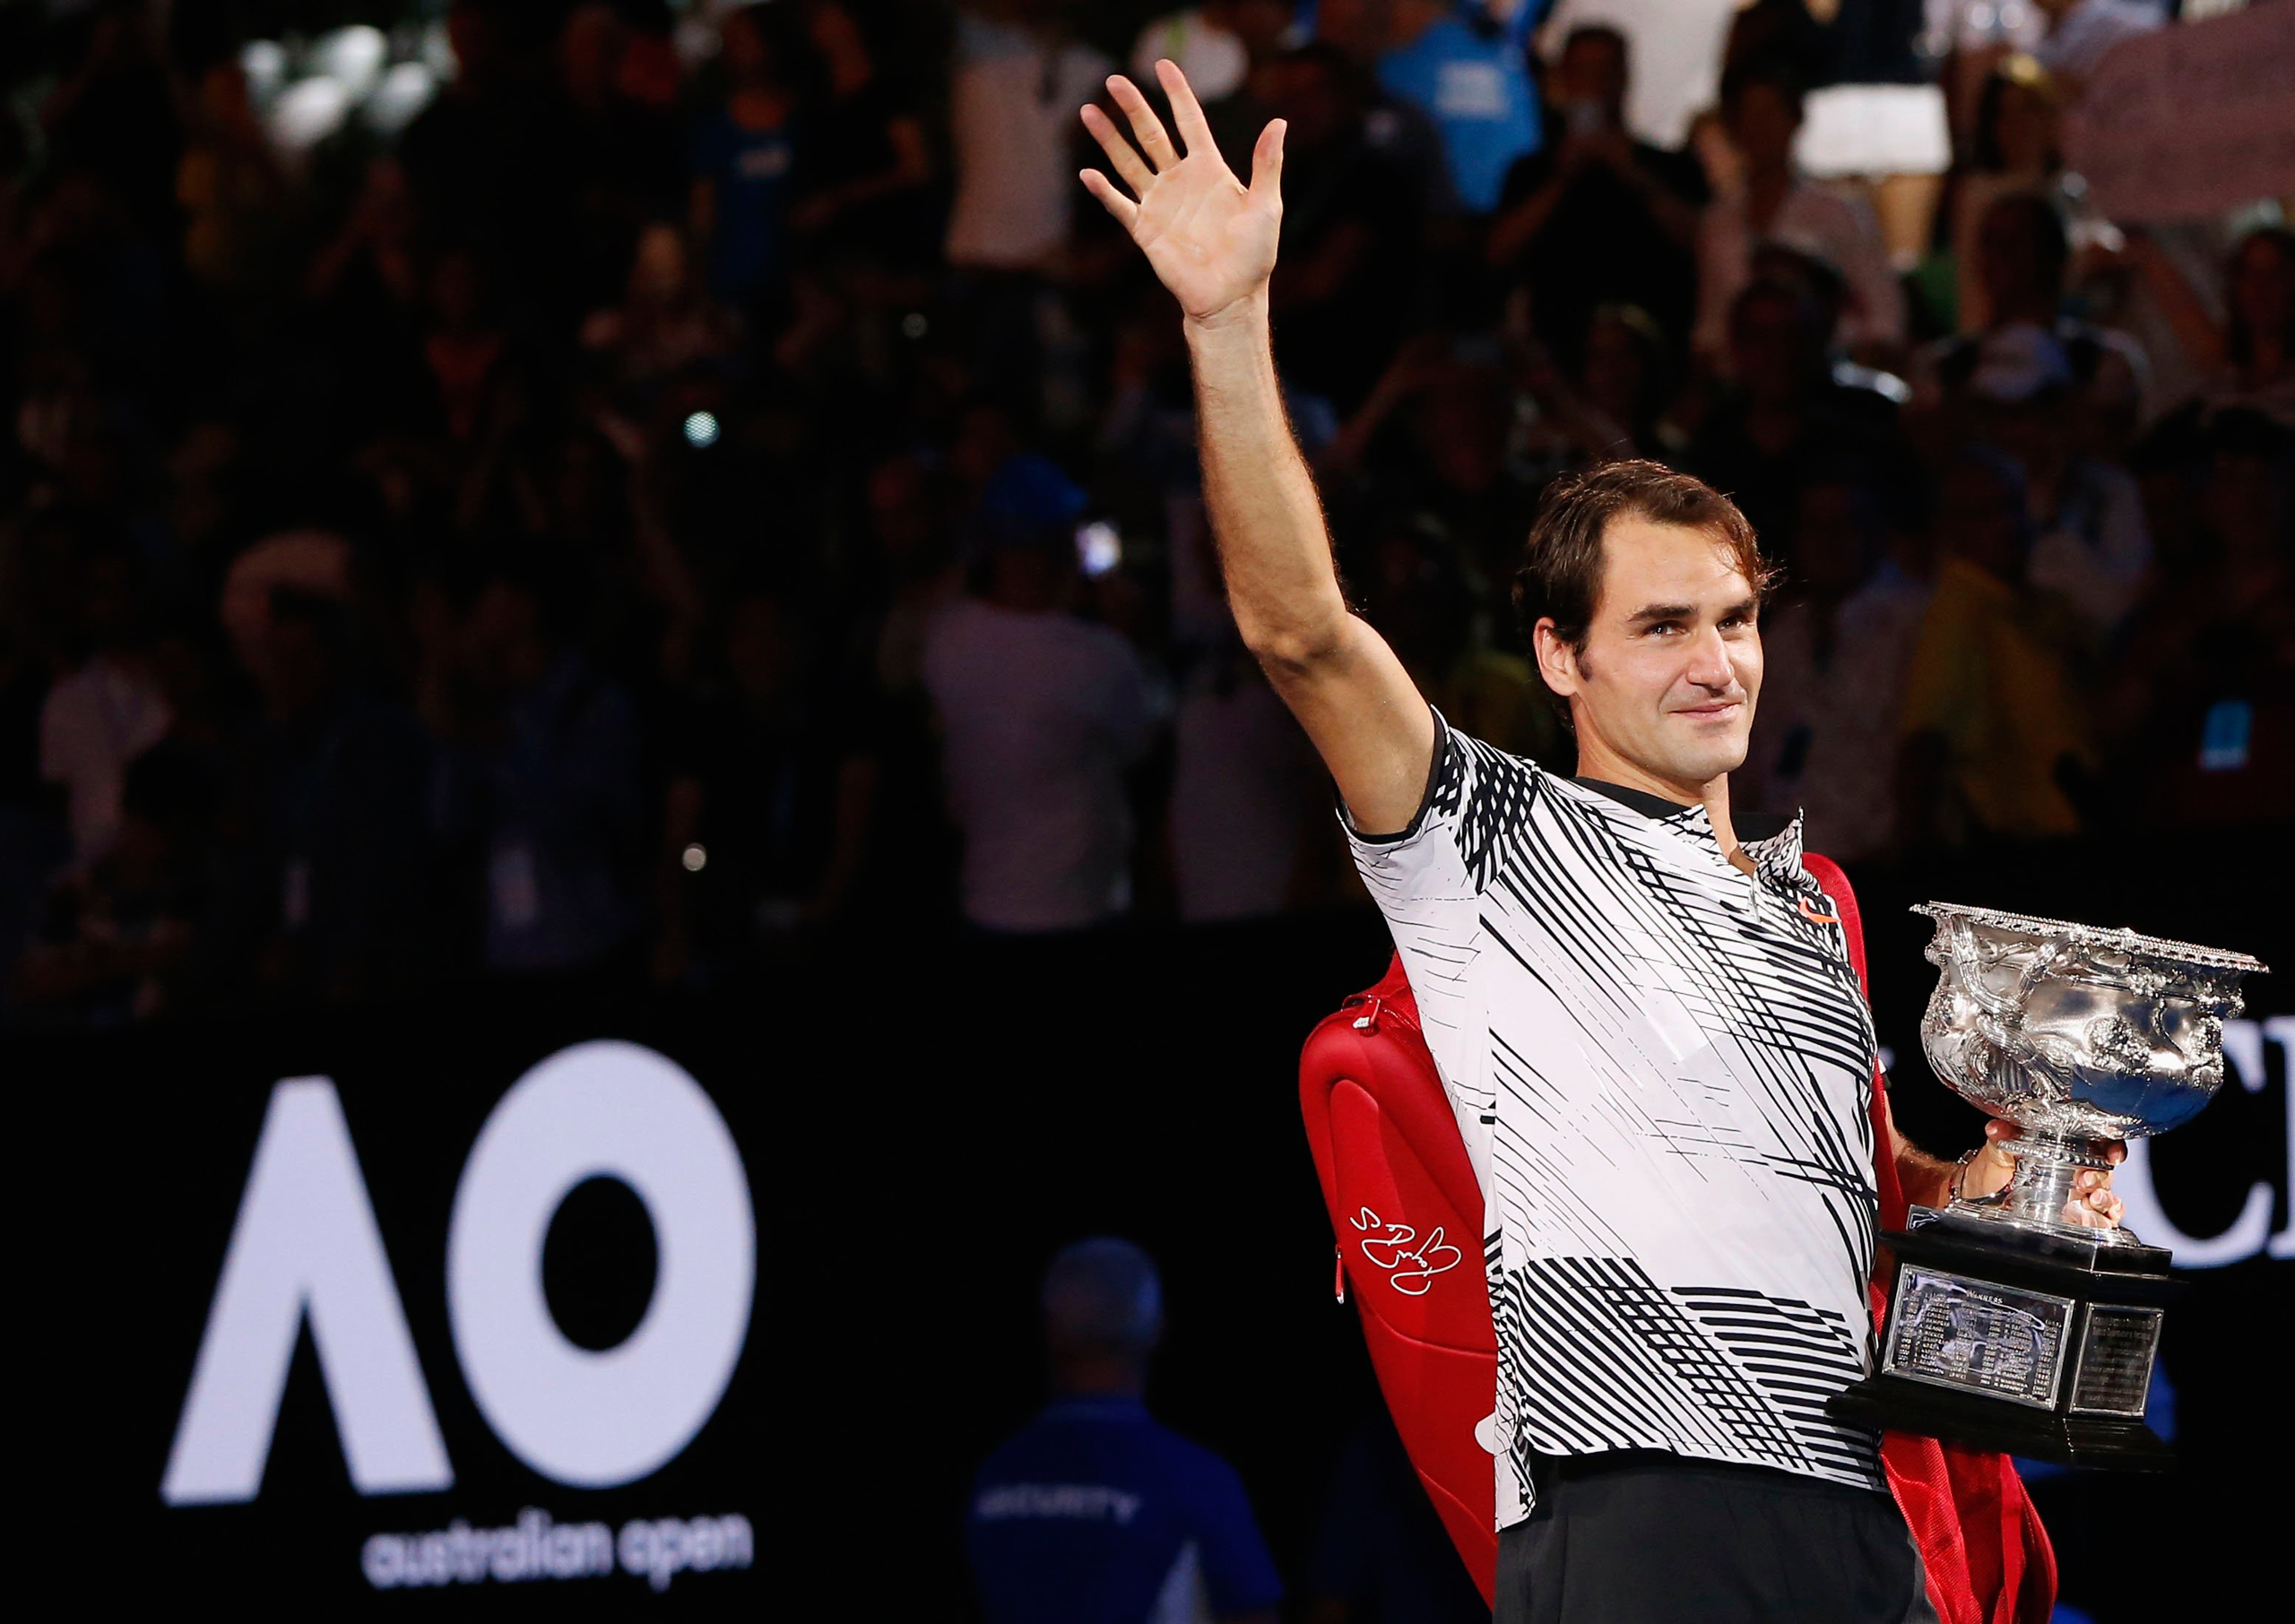 Switzerland's Roger Federer holds the trophy as he celebrates after winning his Men's singles final match against Spain's Rafael Nadal in Melbourne on Jan 29, 2017.